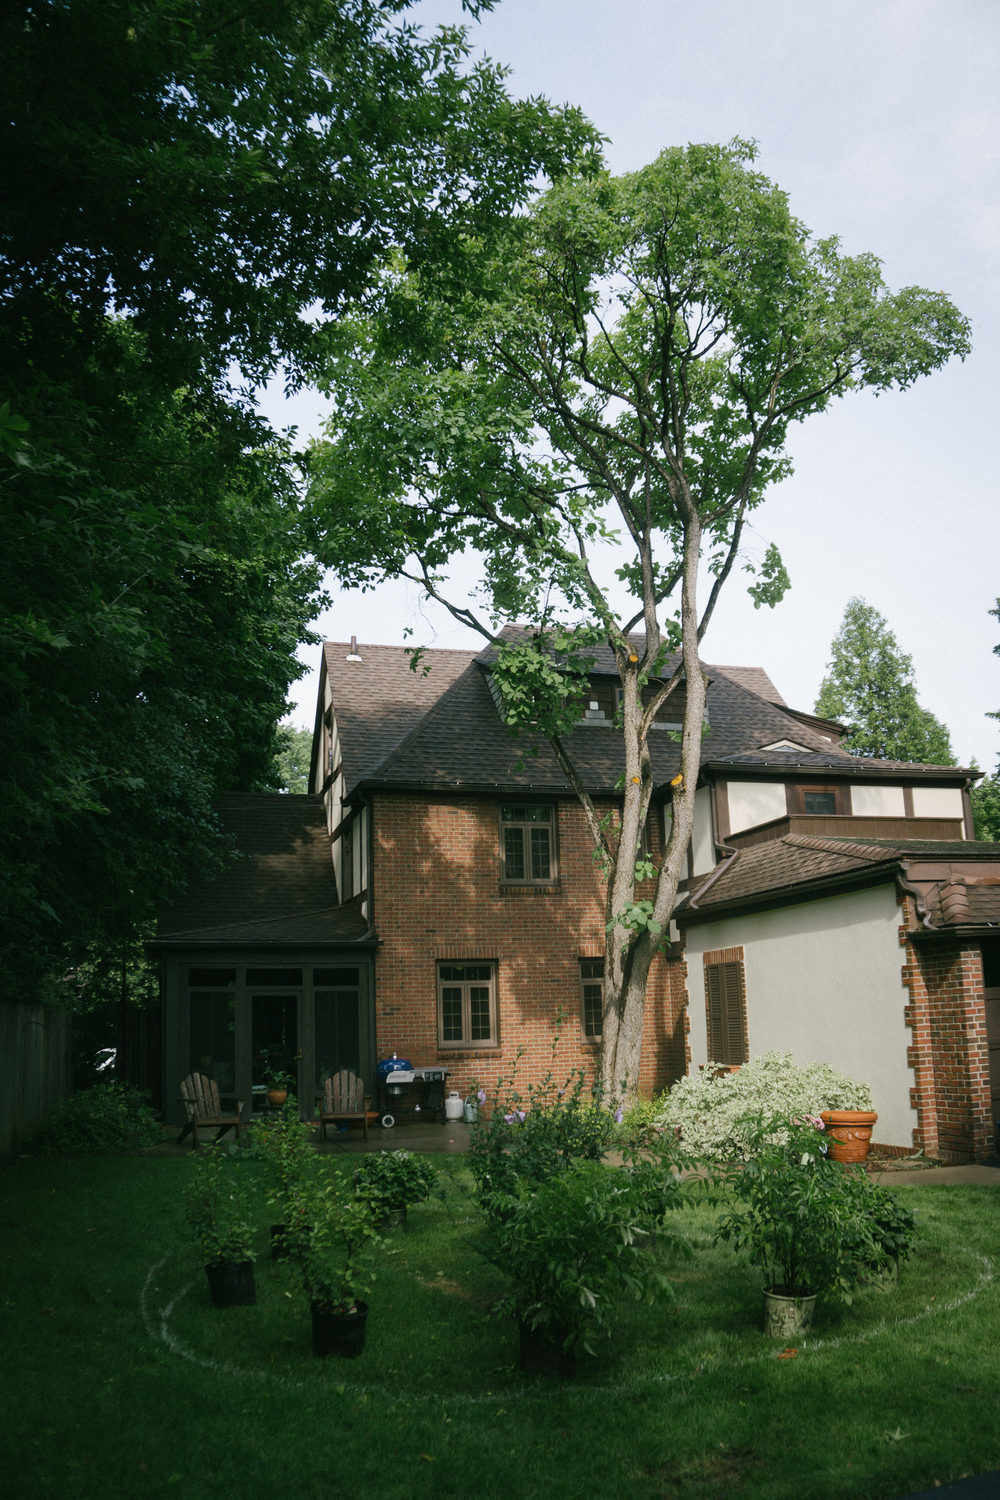 This tree is a type of smokebush and according to an expert at Cornell University, it is very rare to see one this large